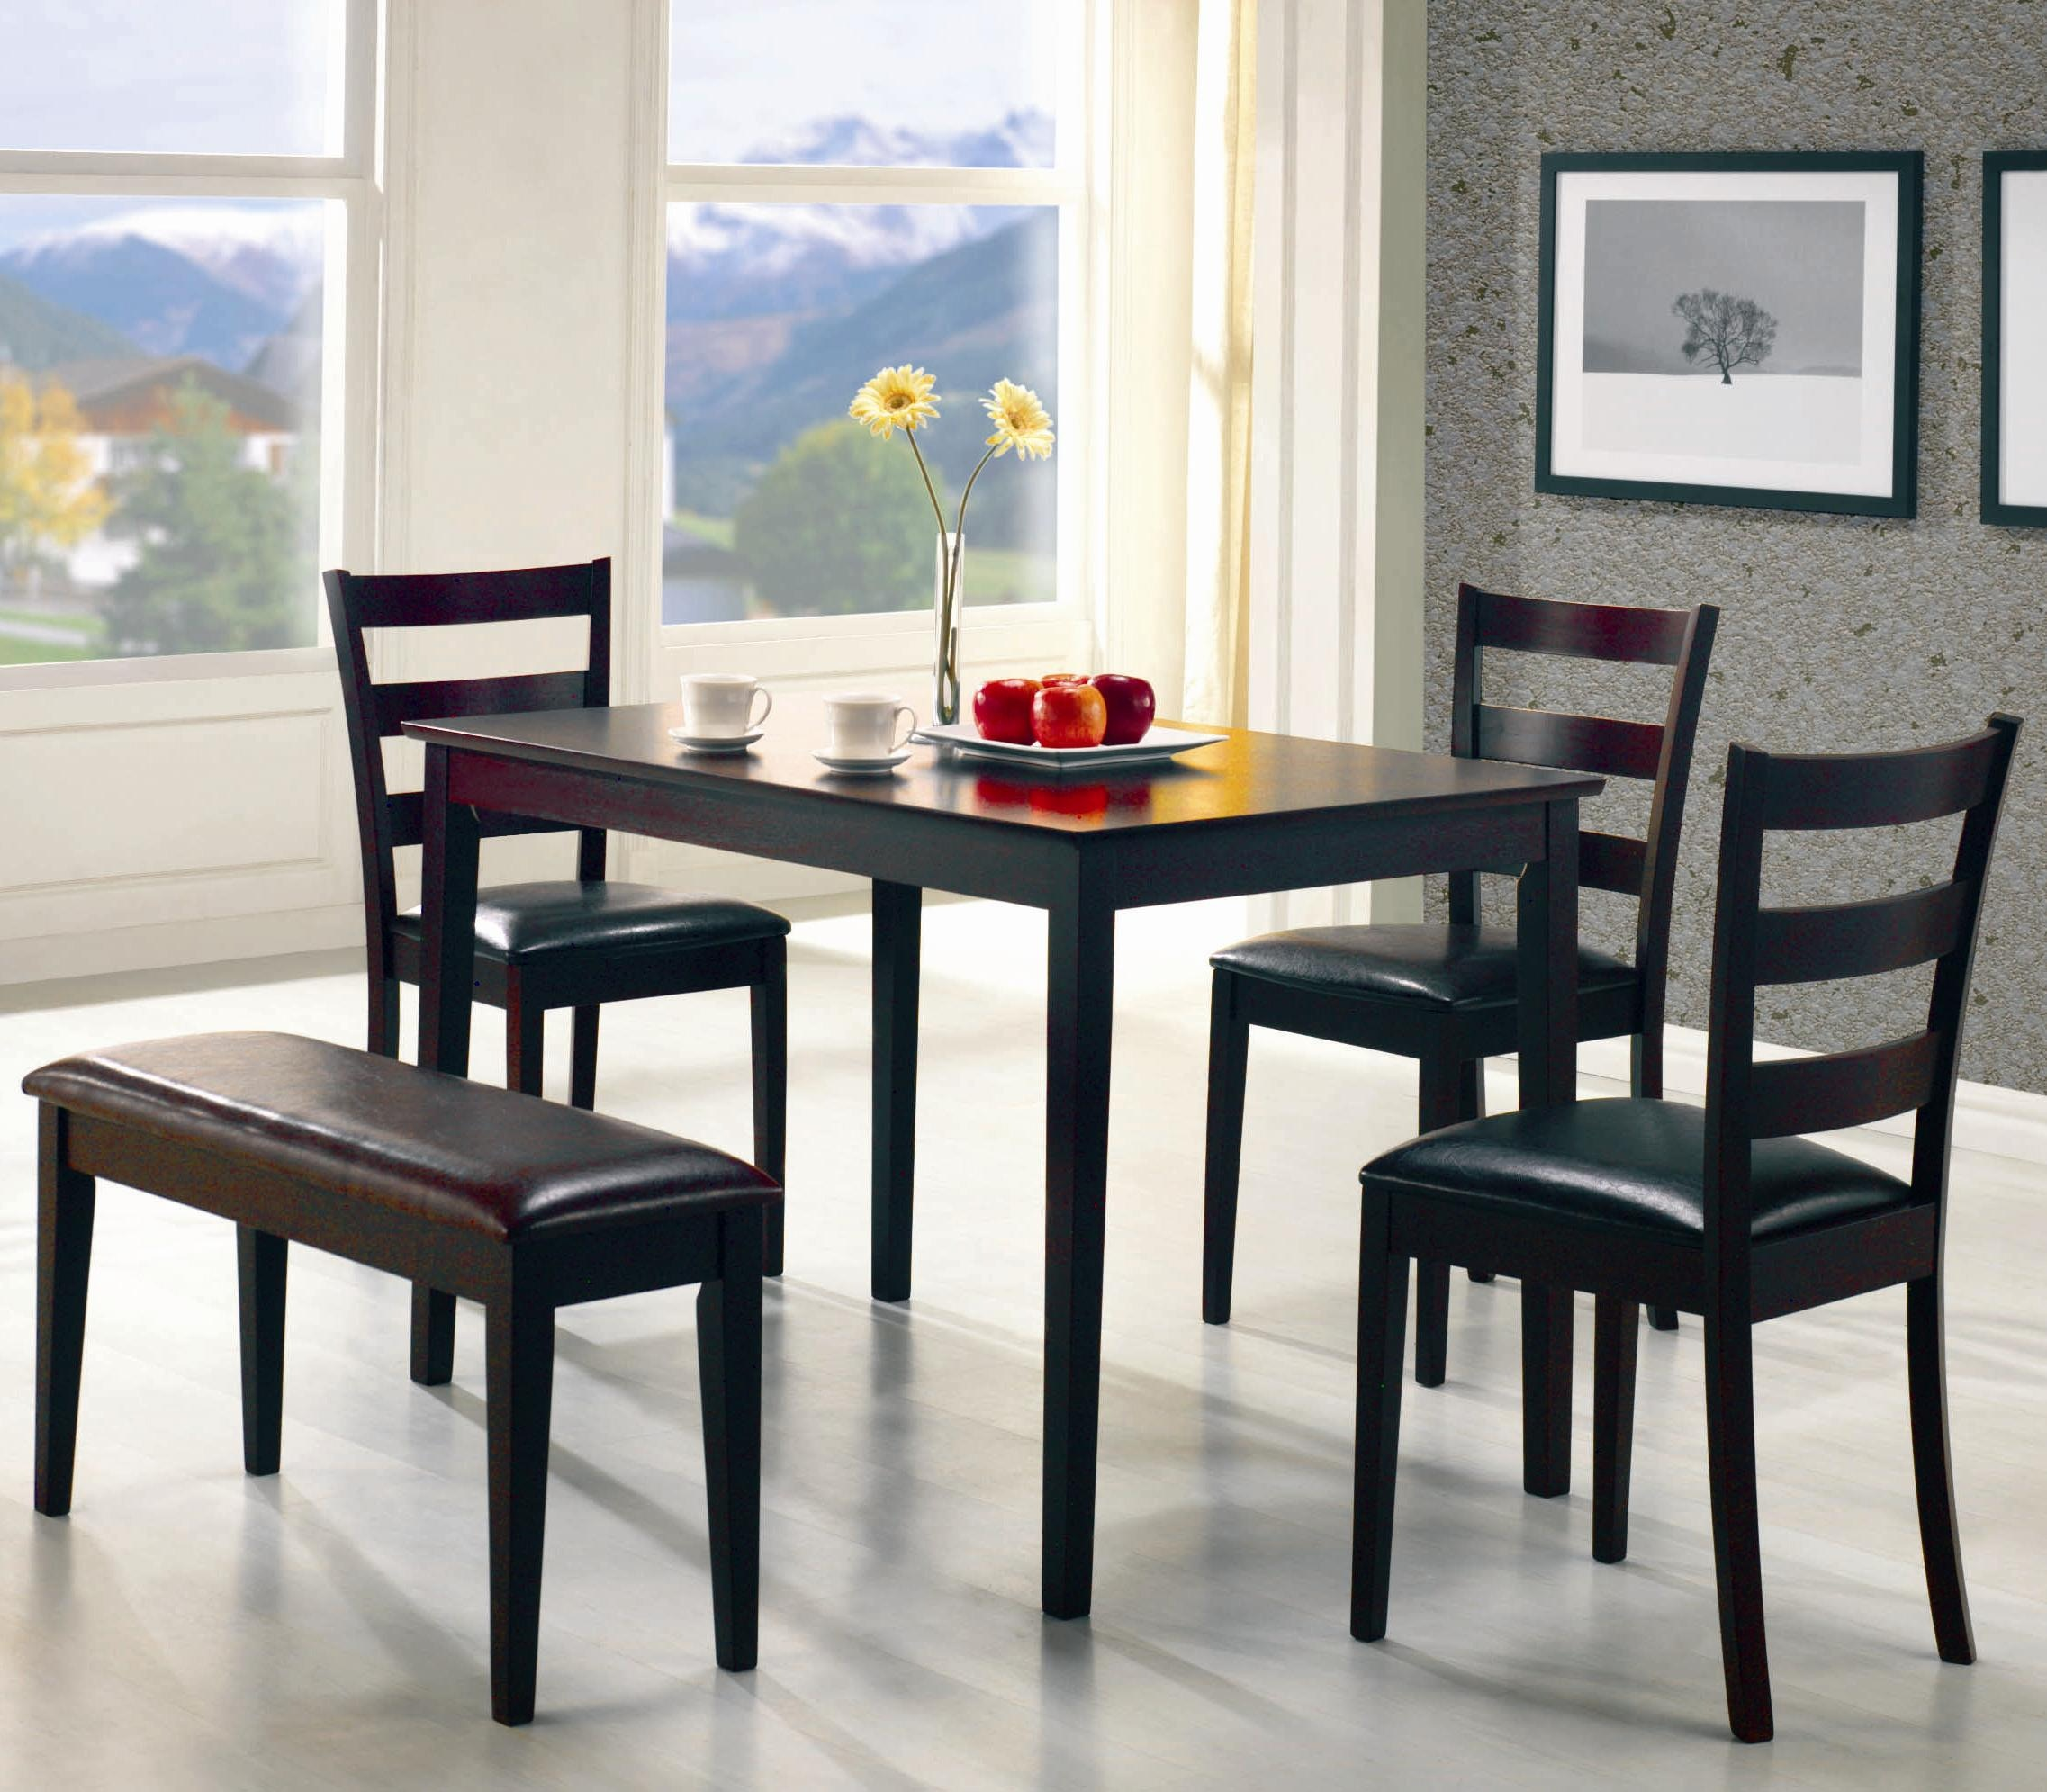 Dining Room Sets Austin Tx: Coaster Dining Room 5 Piece Set 150232